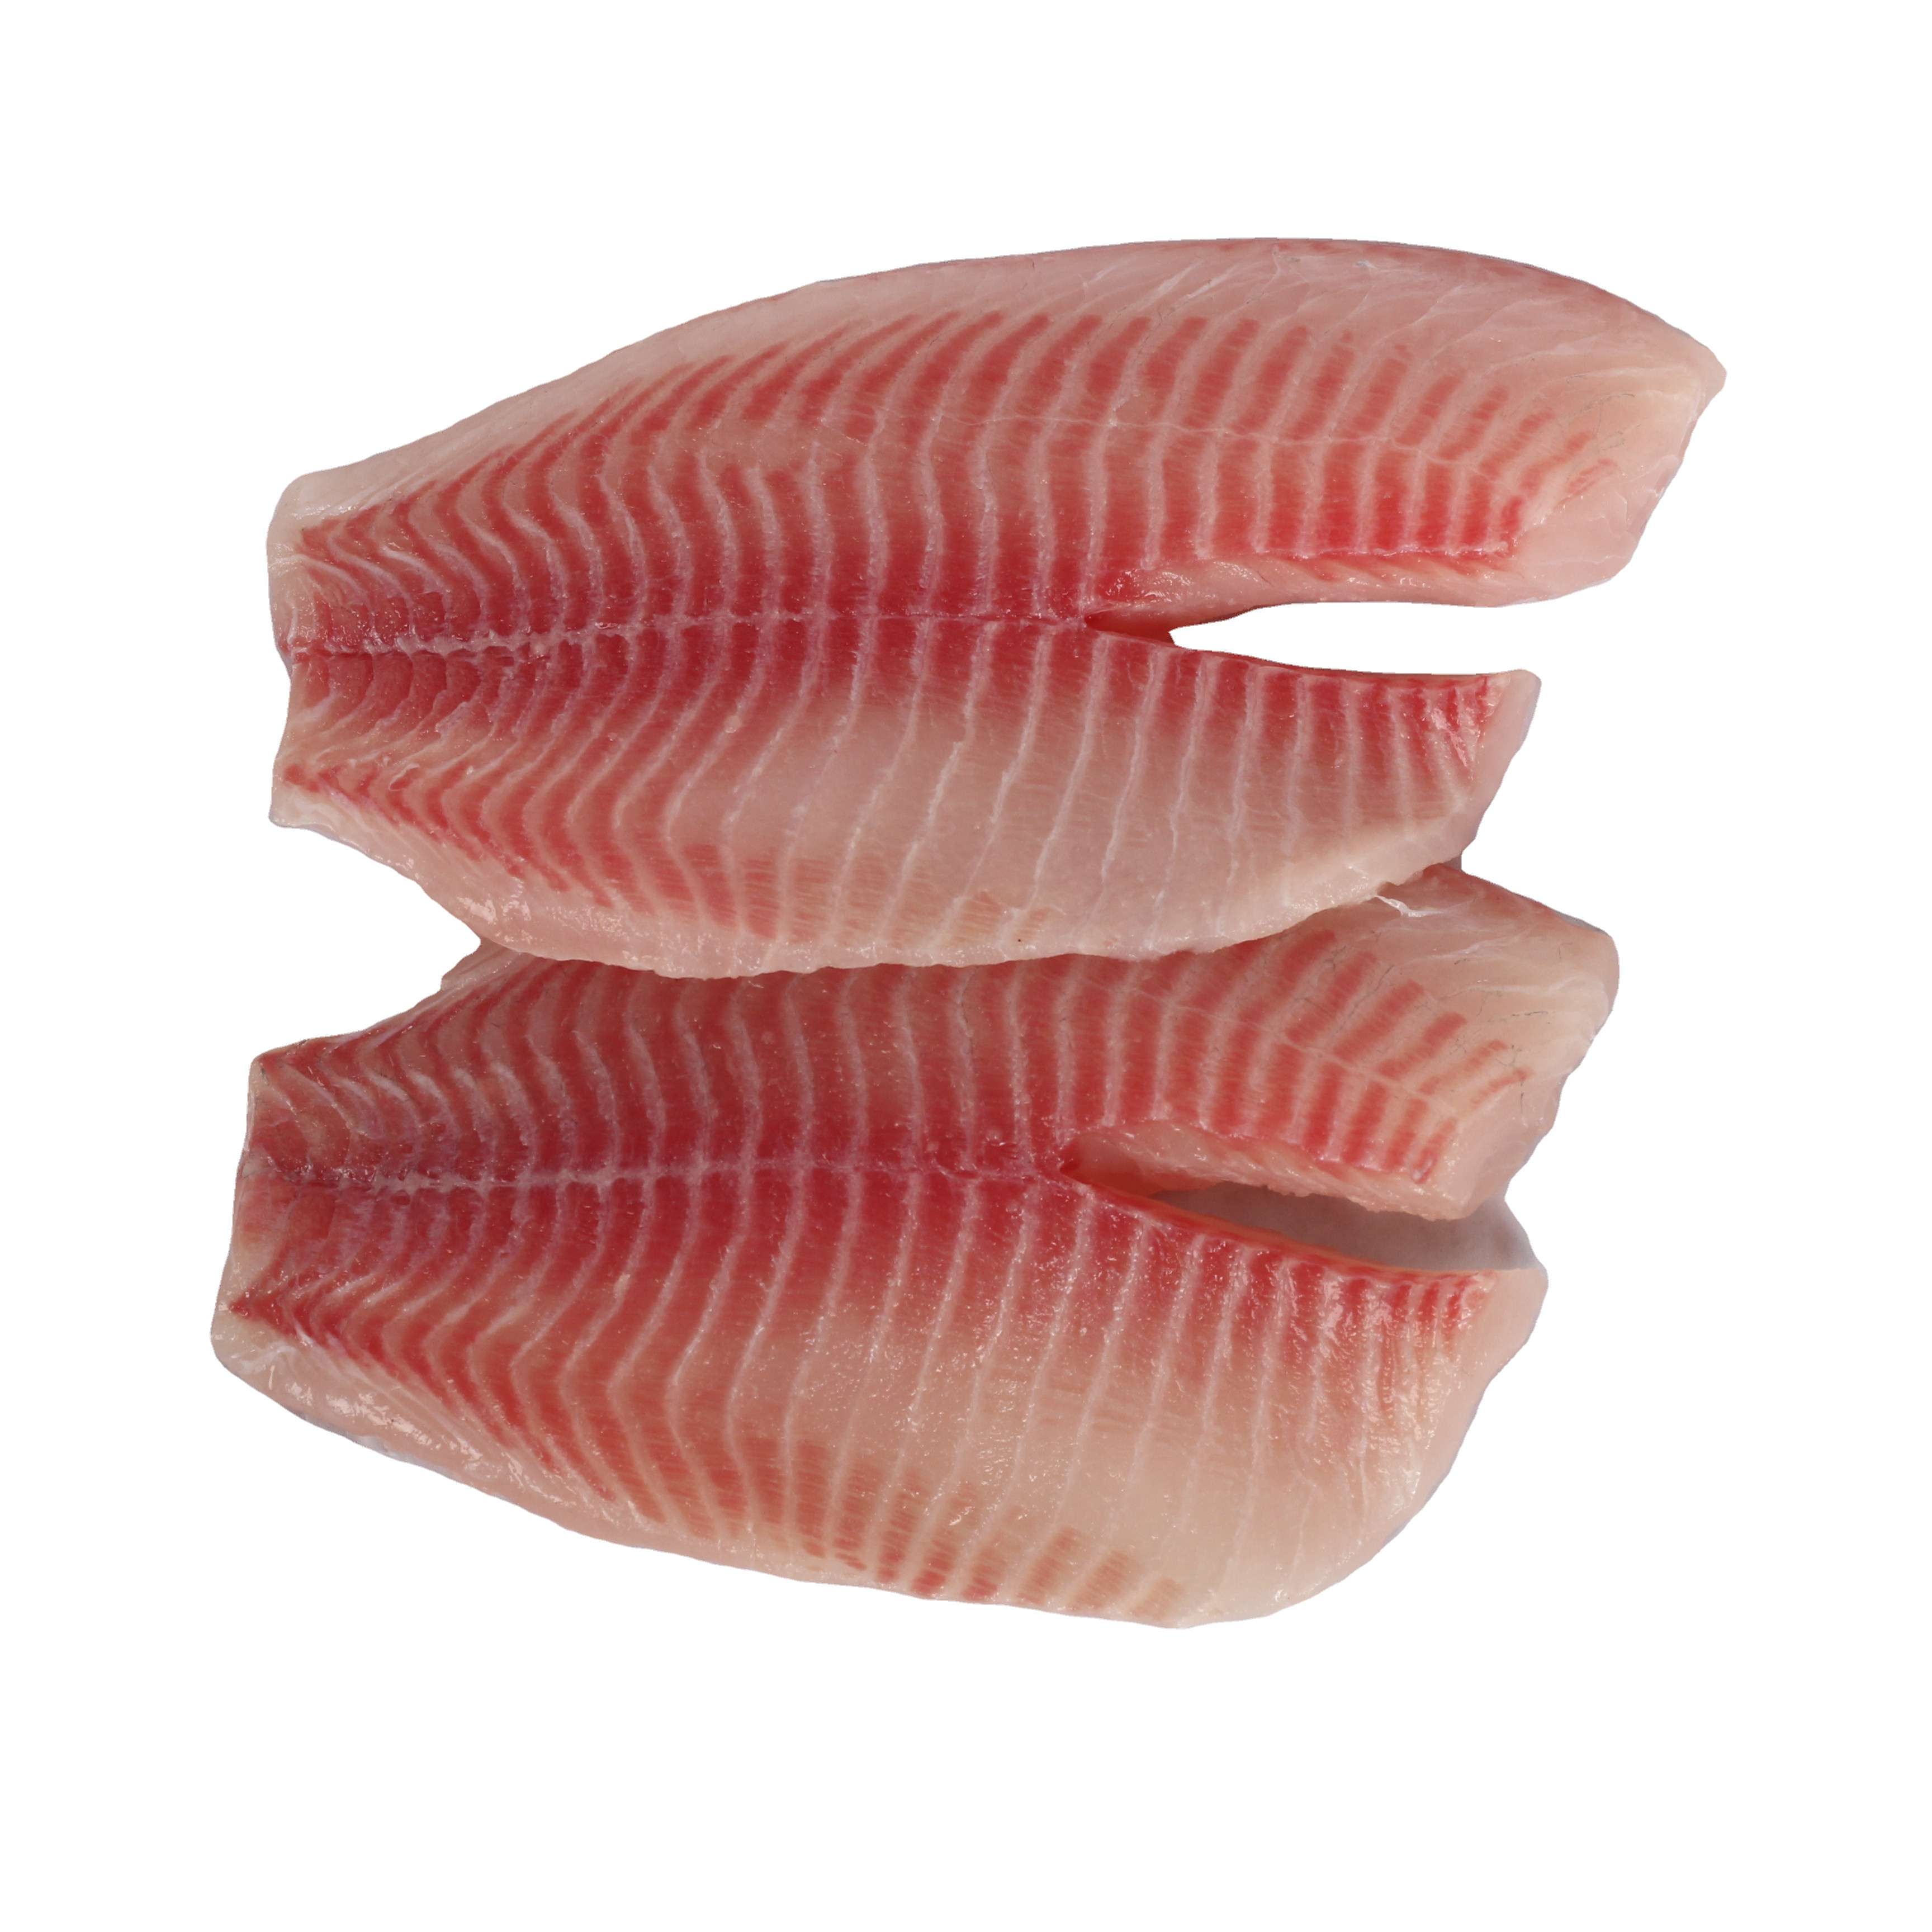 New Season China Farming Frozen Tilapia Fish Fillet Price Buy Tilapia Fillet China Tilapia Fillet Frozen Tilapia Fillet Product On Alibaba Com